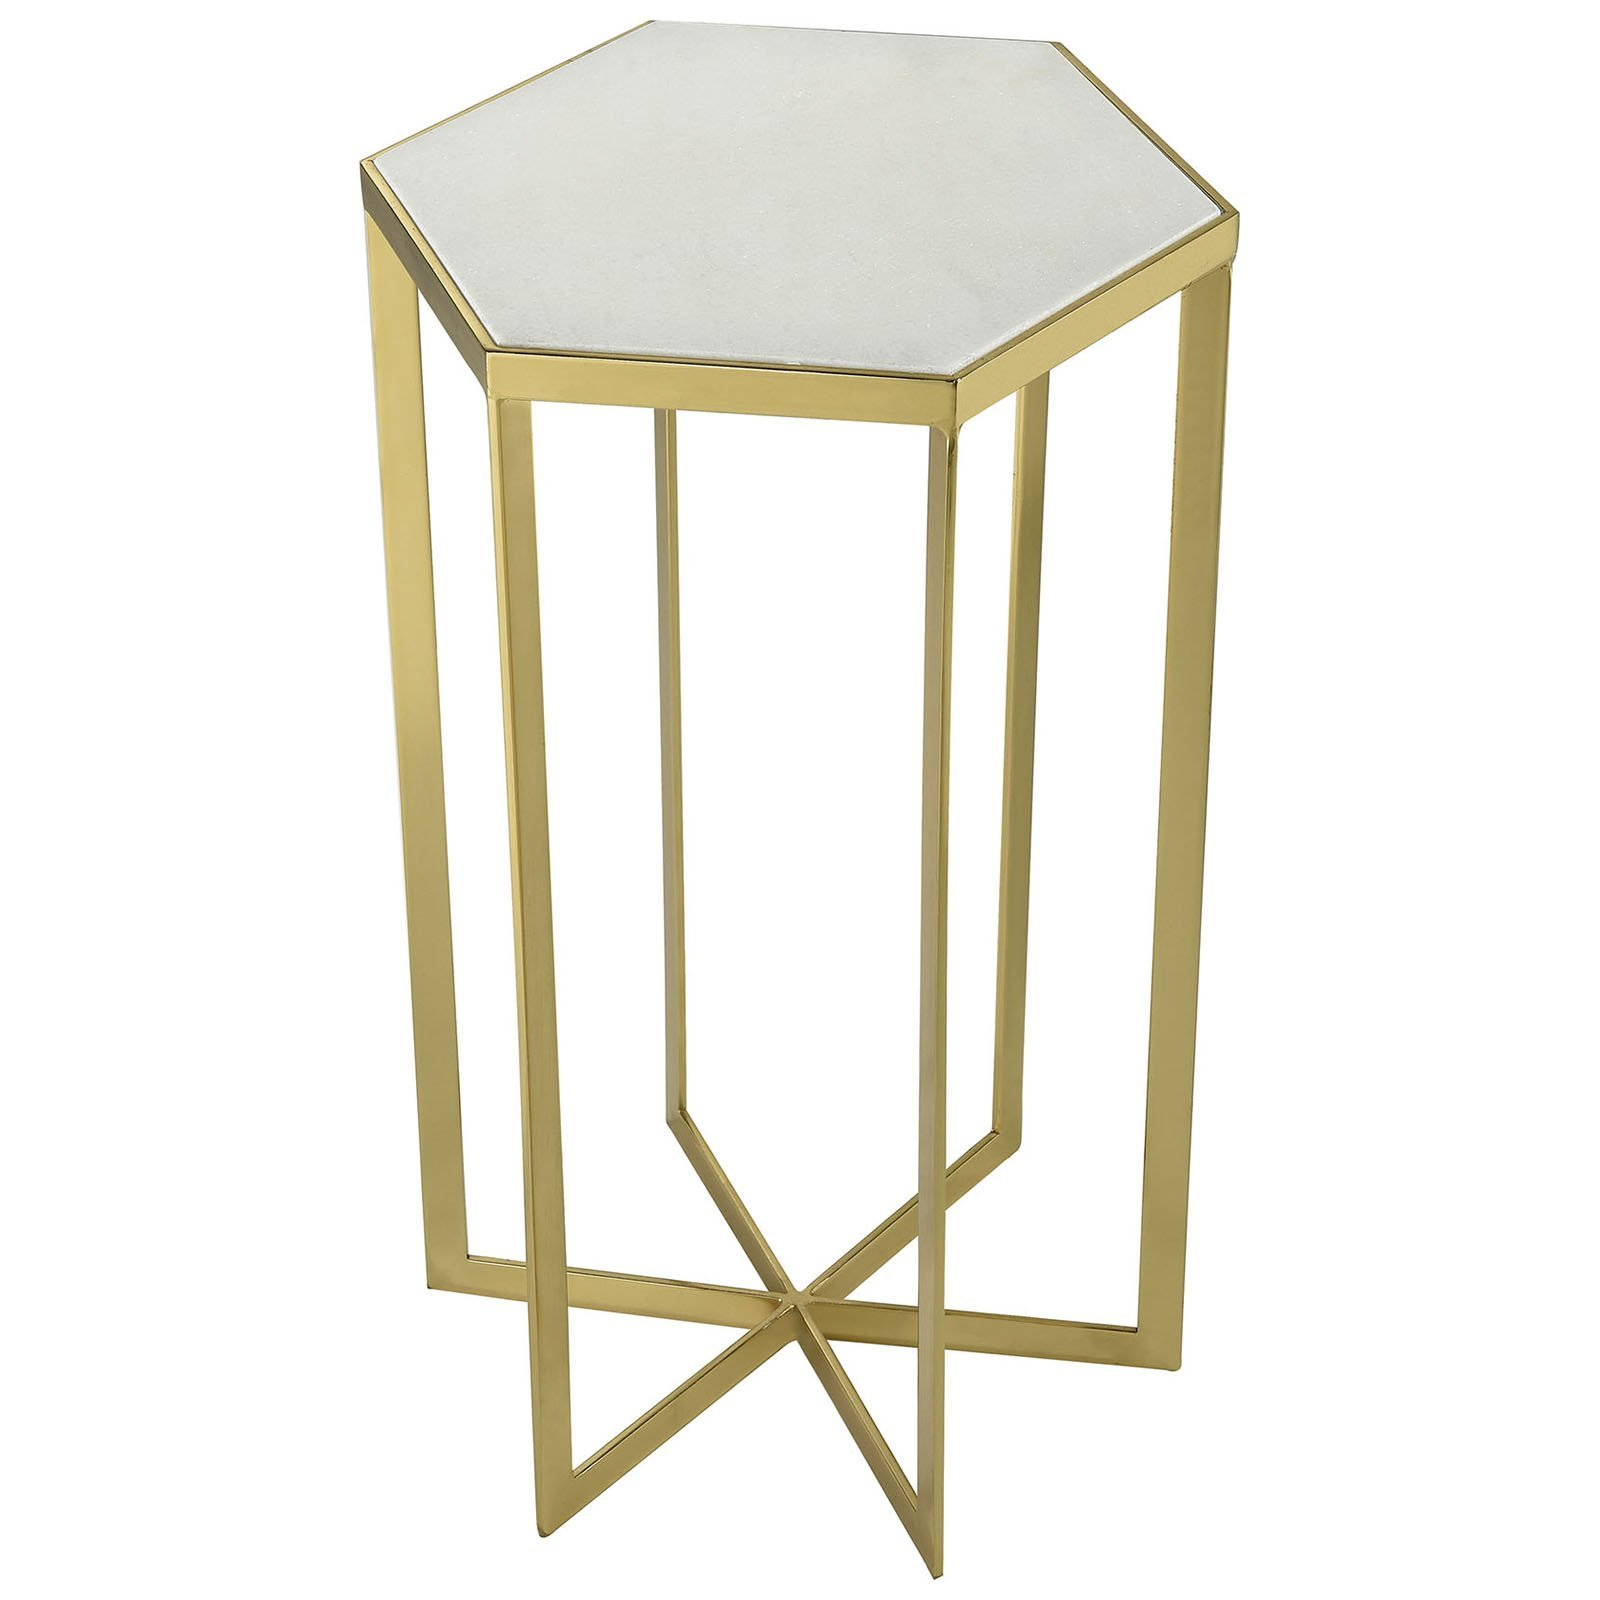 halter contemporary accent tables gold fratantoni lifestyles white marble top table plated metal with genuine galvanized side amish oak end kohls dining chairs teak outdoor